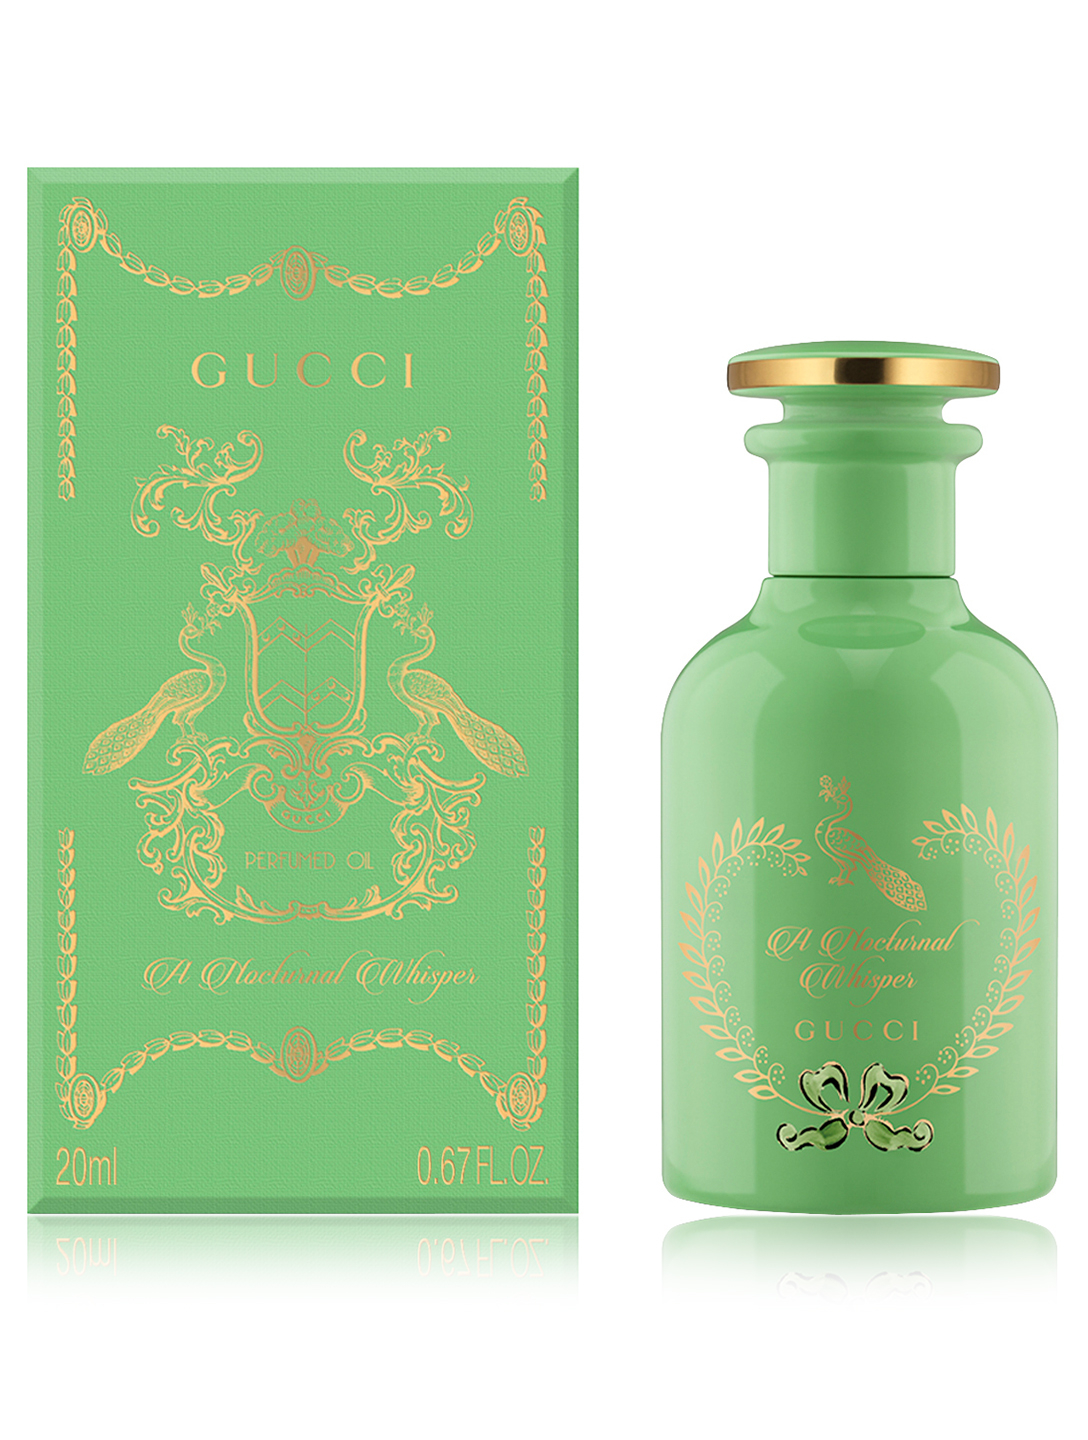 GUCCI The Alchemist's Garden A Nocturnal Whisper Perfumed Oil Beauty